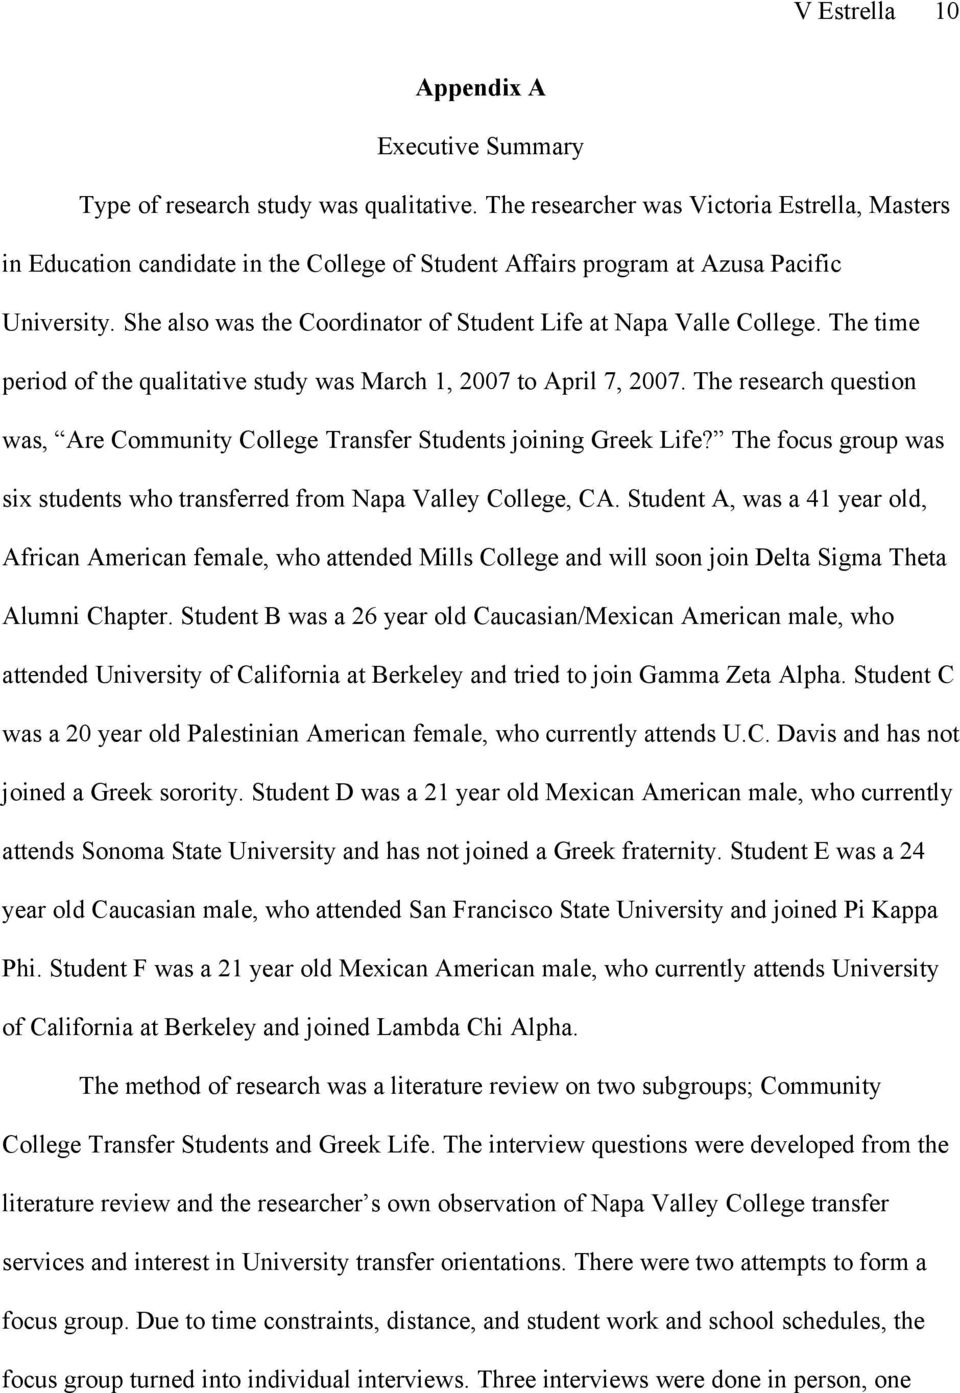 She also was the Coordinator of Student Life at Napa Valle College. The time period of the qualitative study was March 1, 2007 to April 7, 2007.